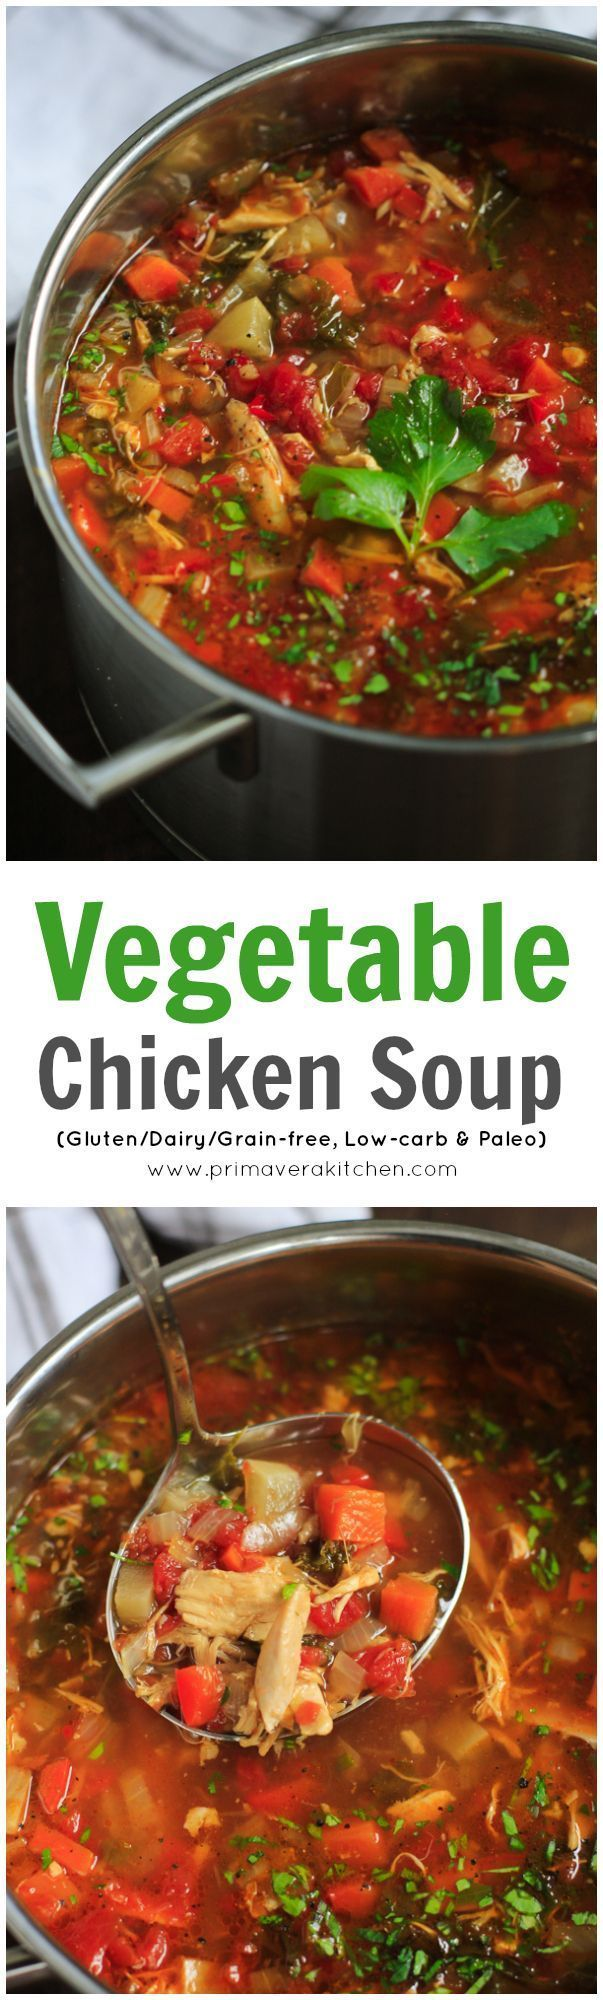 This ultra-flavourful Chicken Vegetable Soup is all you need to stay warm and healthy. It's also gluten/grain/dairy-free, paleo and low-carb!